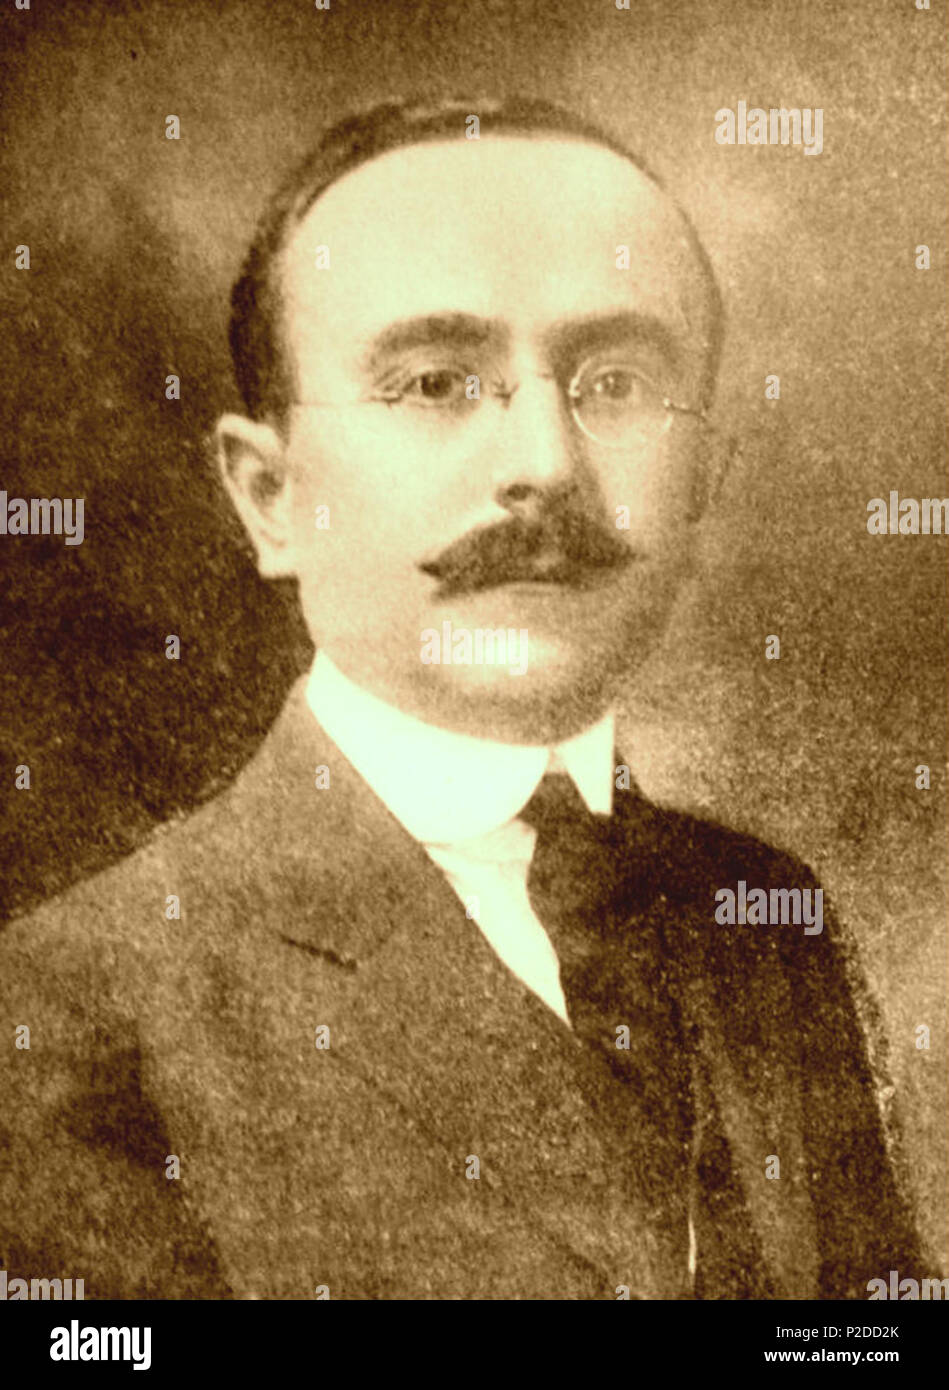 . English: Kole Tromara (1882-1945), Albanian politician and leader of the Albanian community in Boston, MA. Photo of 1920s, while serving as a Prefect in Albania . 1920s. NA. Photo taken during 1920s 29 Kole Tromara (1882-1945), Albanian politicianStock Photo